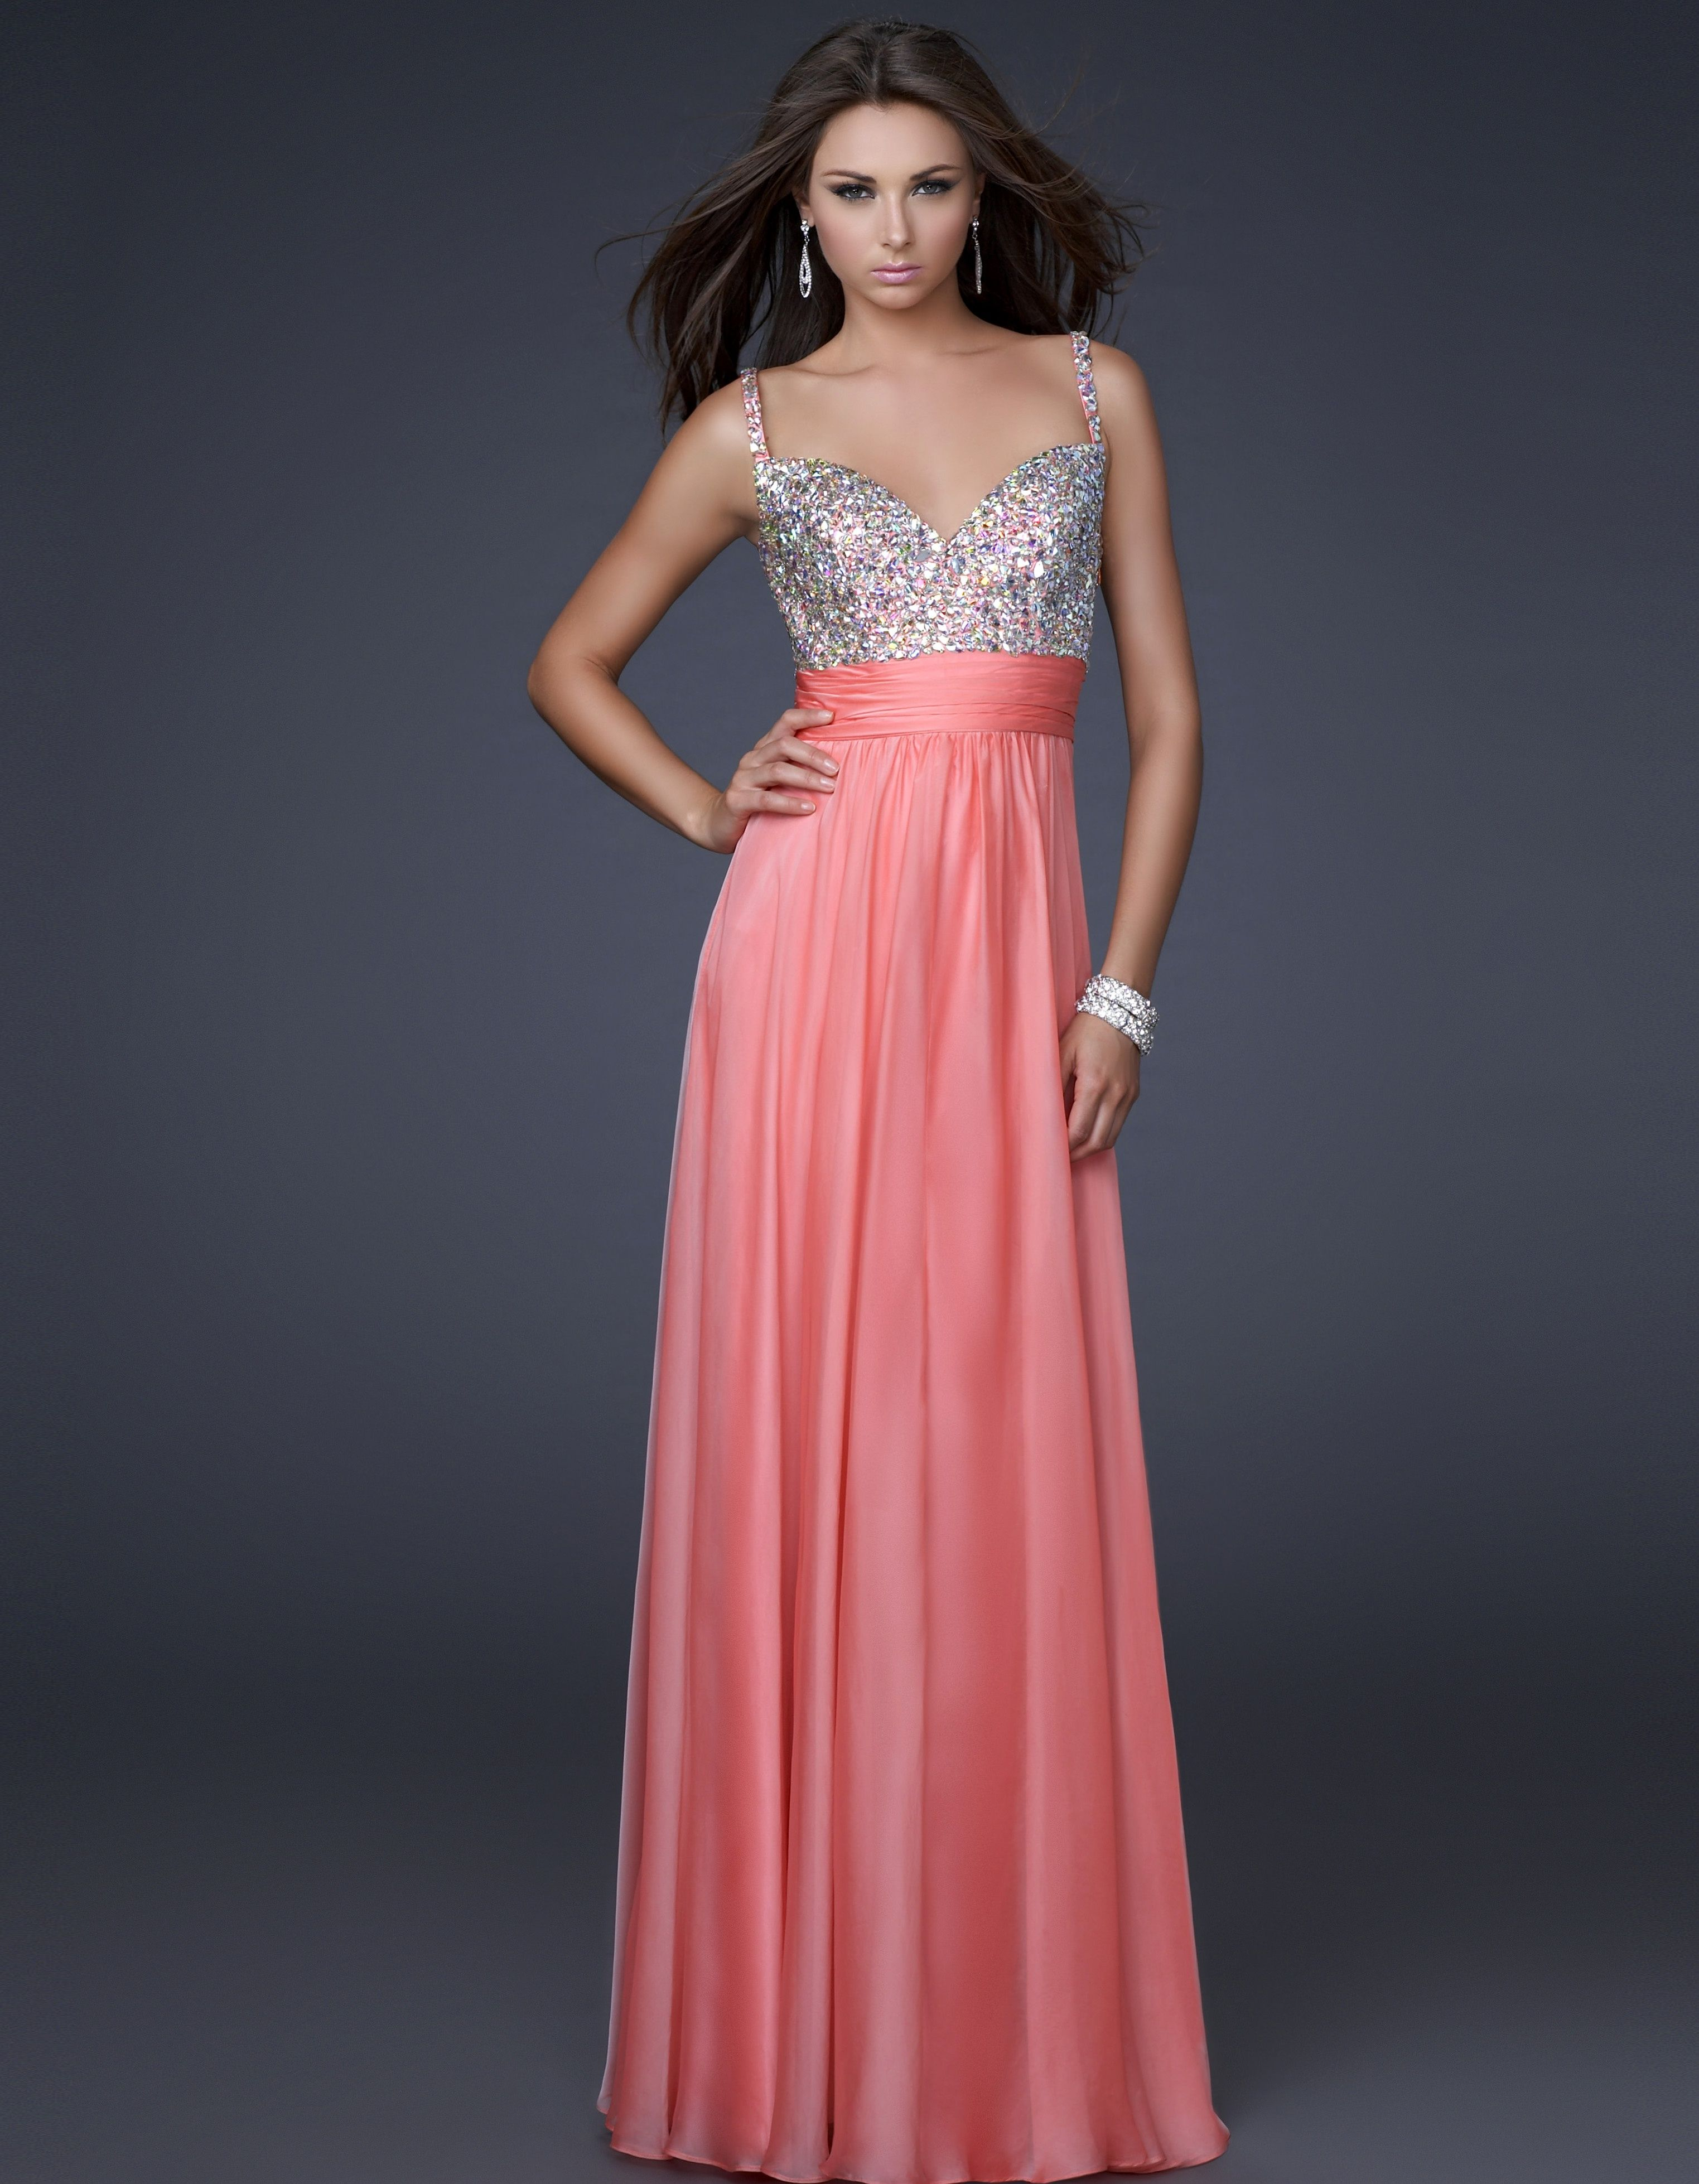 My Prom Dress <3   Froak model   Pinterest   Prom, Empire online and ...